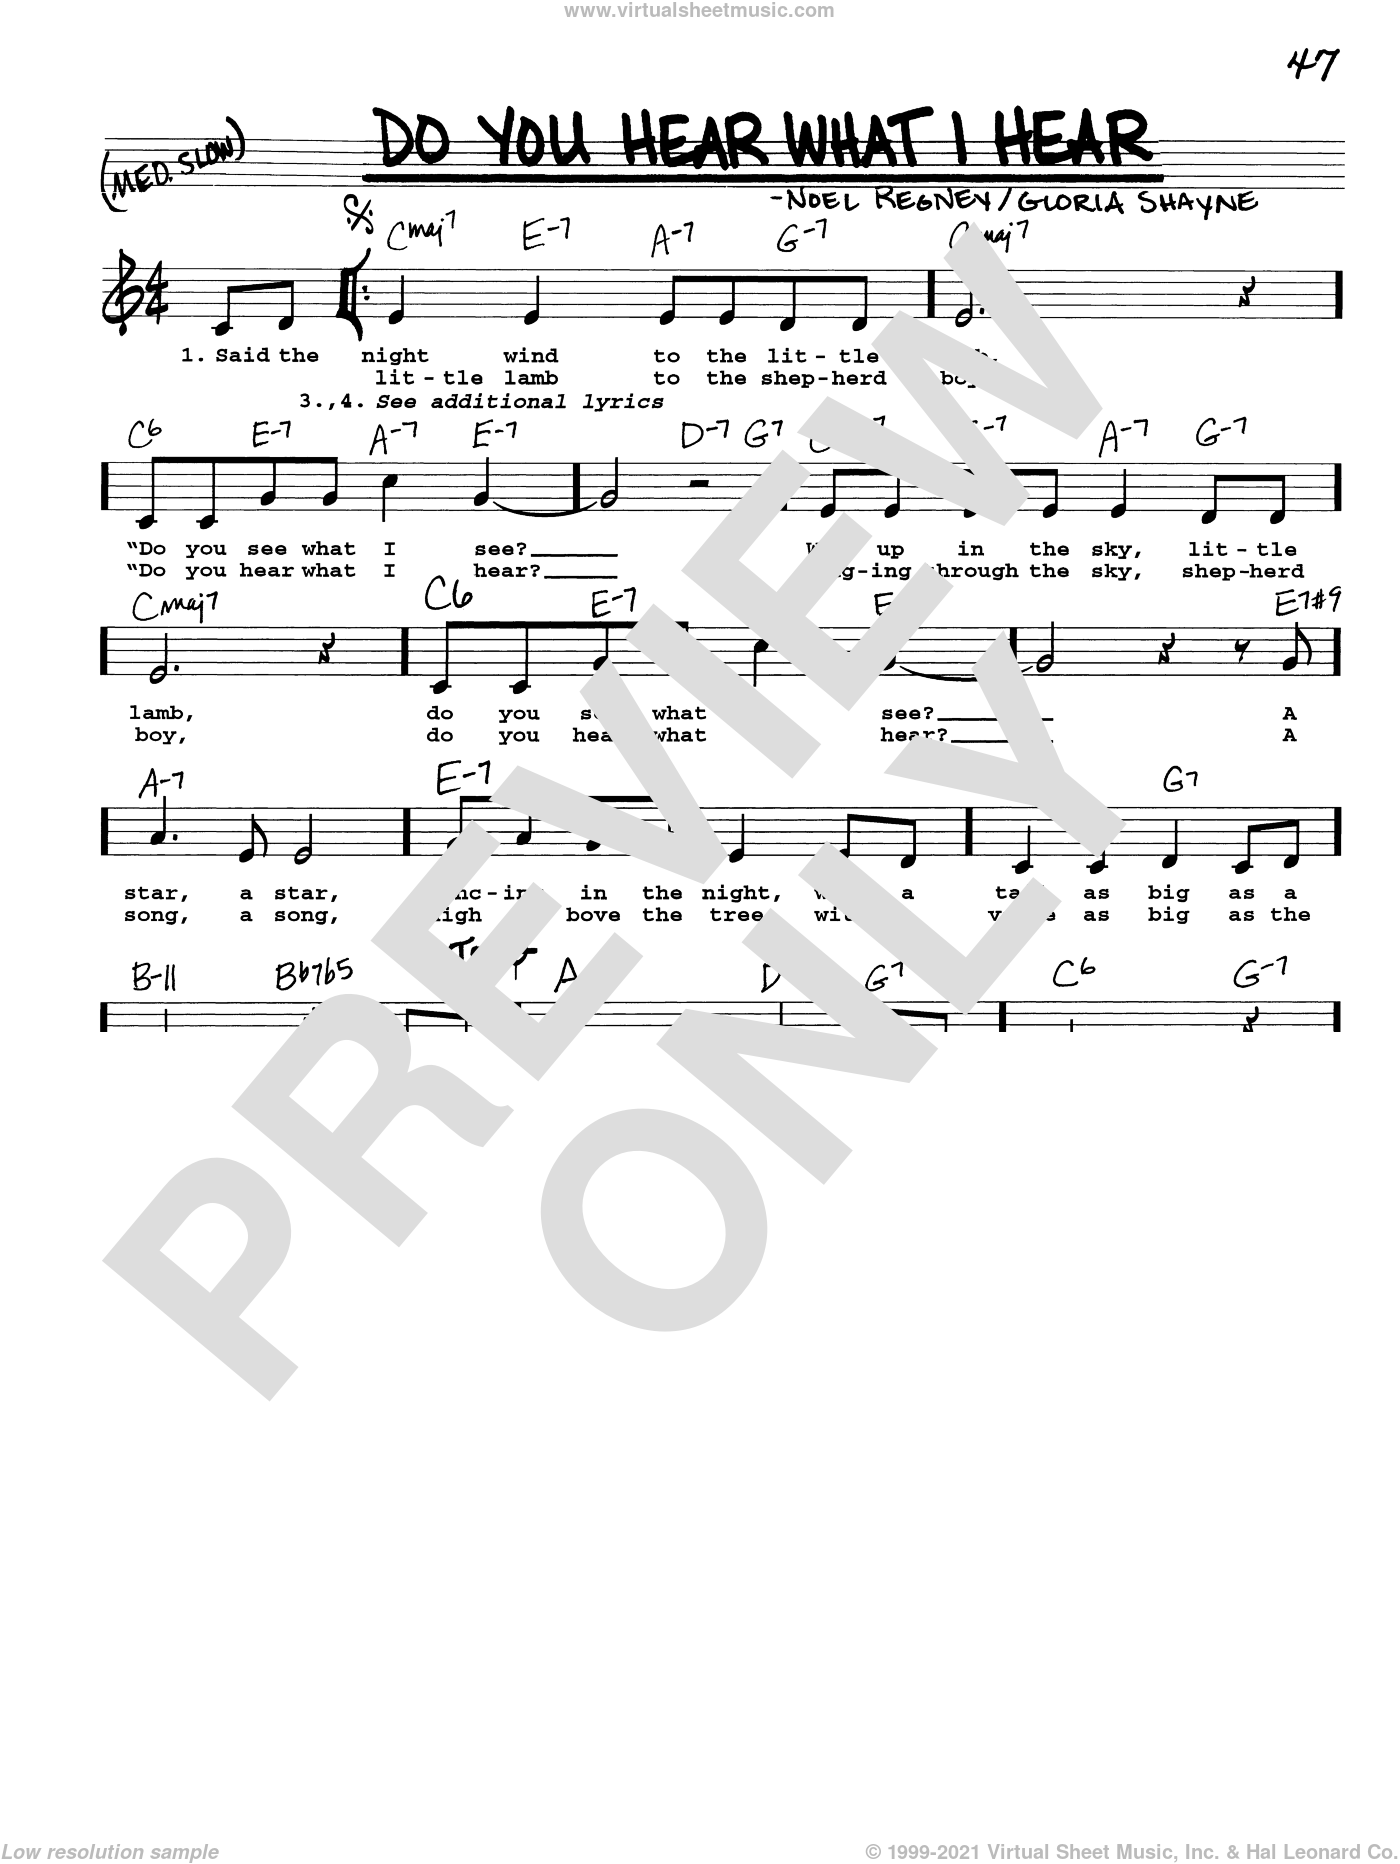 Do You Hear What I Hear sheet music for voice and other instruments (real book with lyrics) by Gloria Shayne and Noel Regney, intermediate skill level